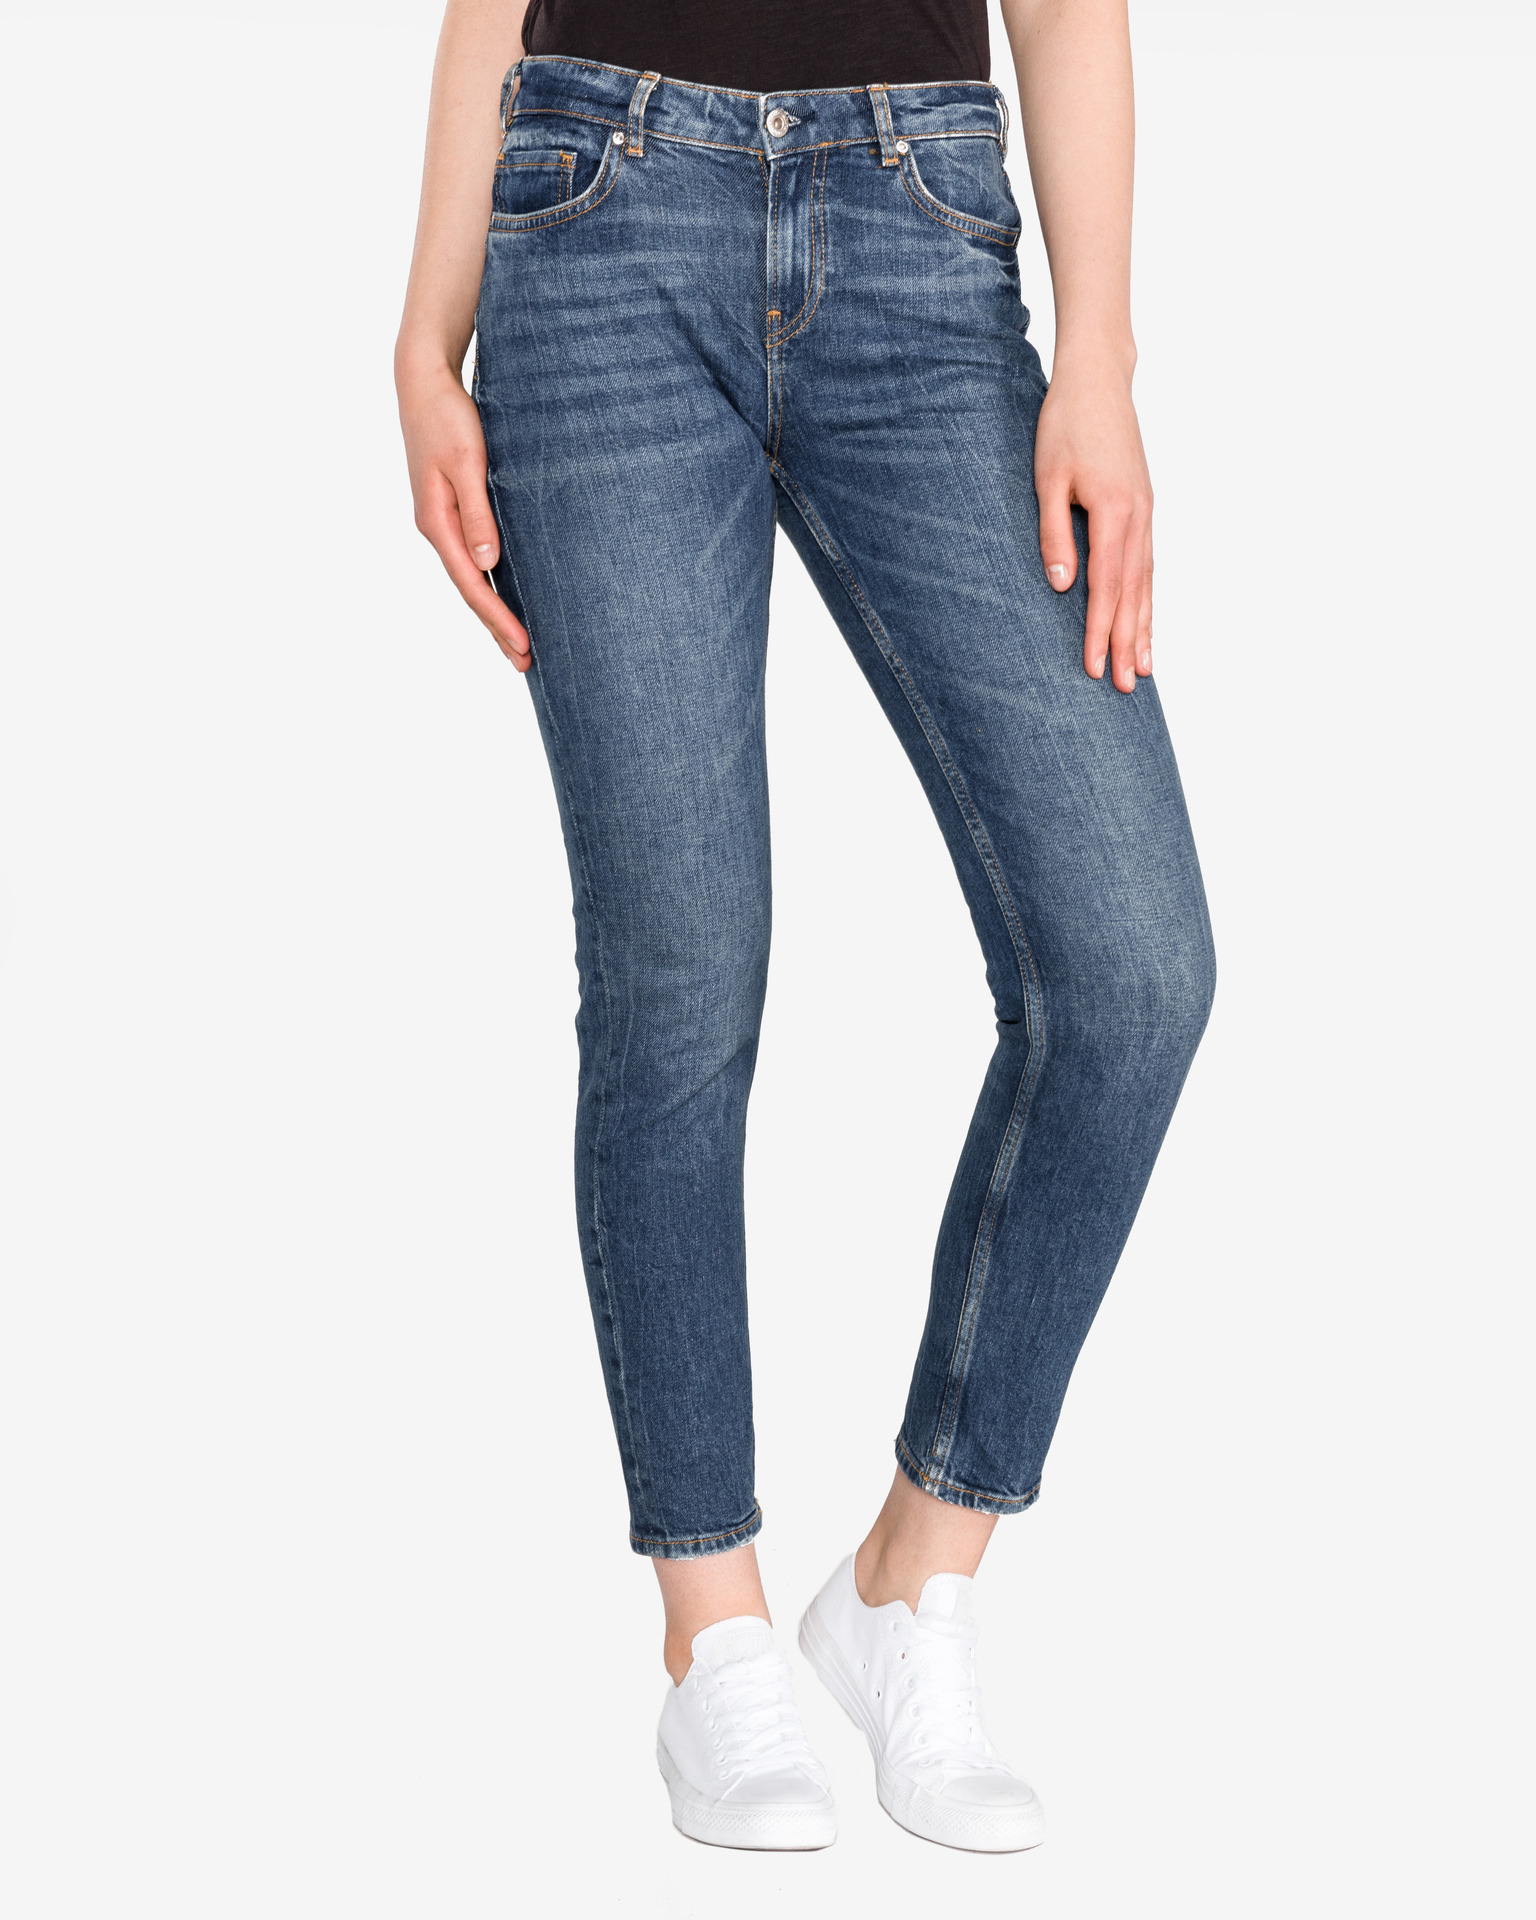 The Keeper Jeans Scotch  Soda